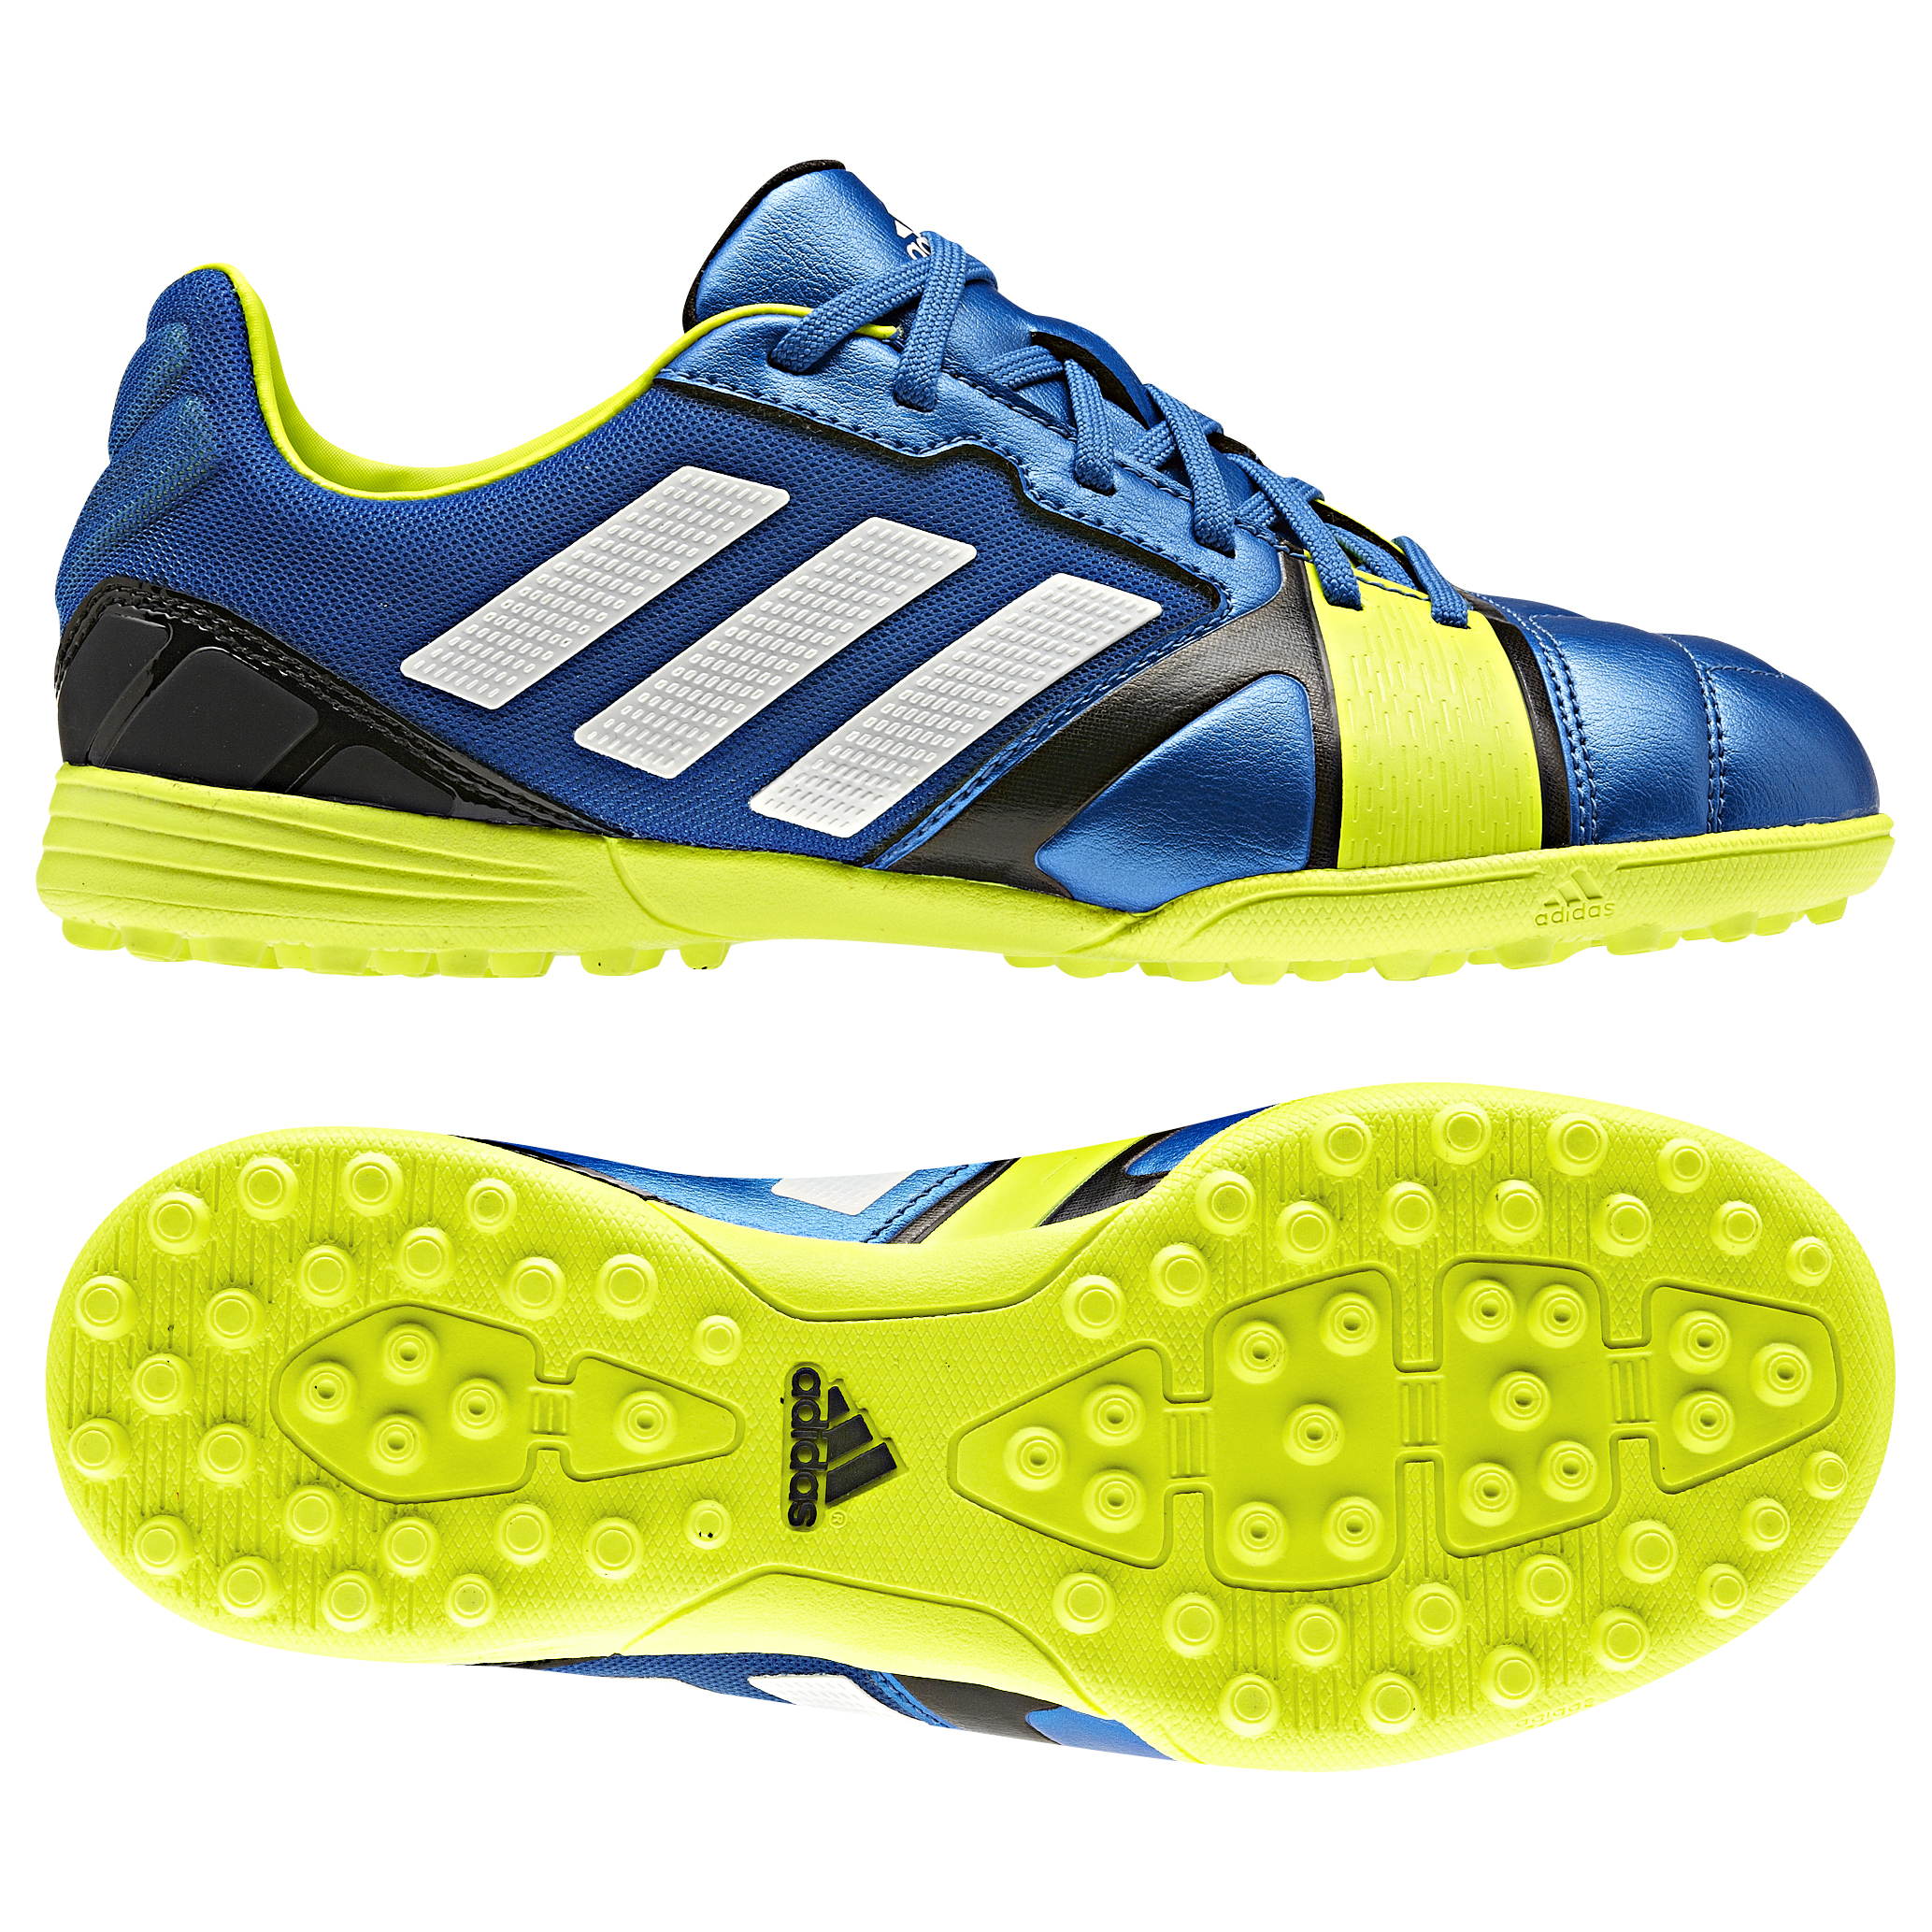 Adidas Nitrocharge 2.0 TRX Astroturf Trainers - Kids Blue